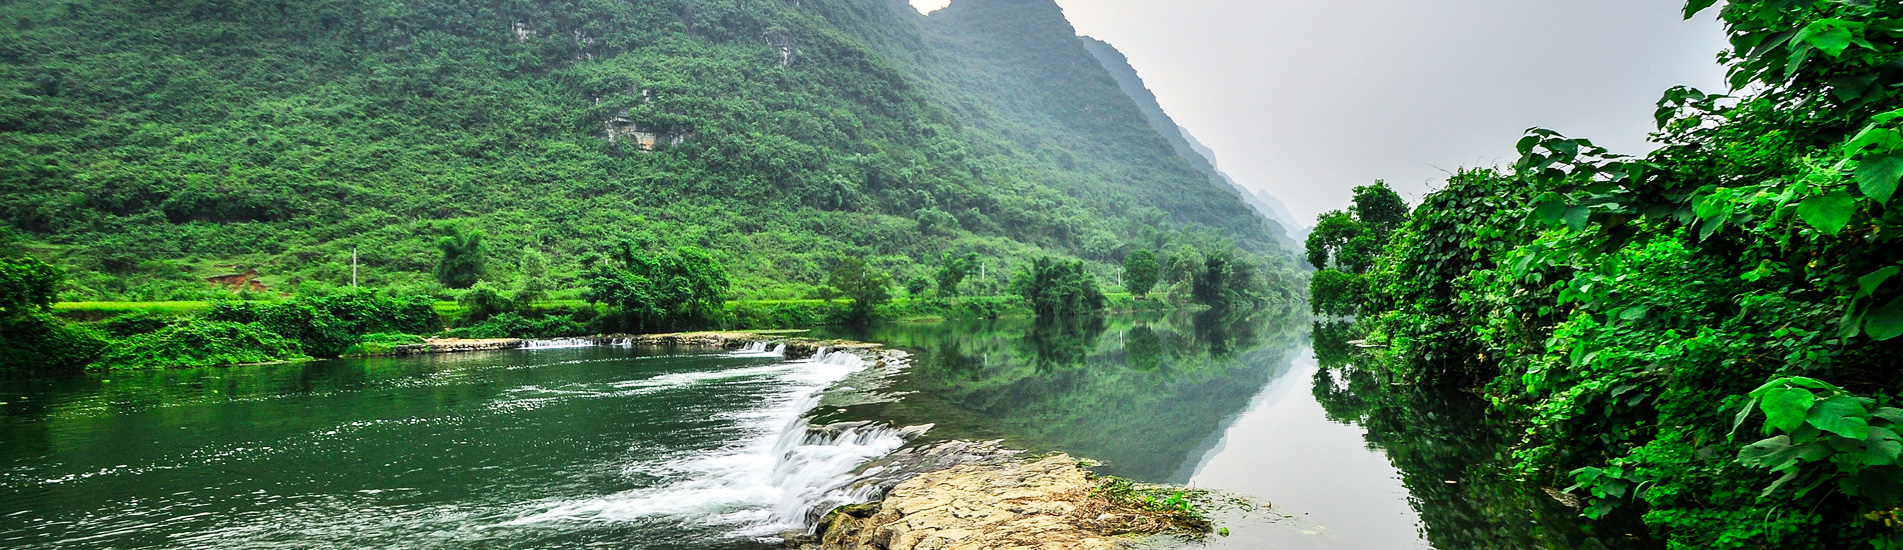 Yangshuo countryside scenery, the Yulong River